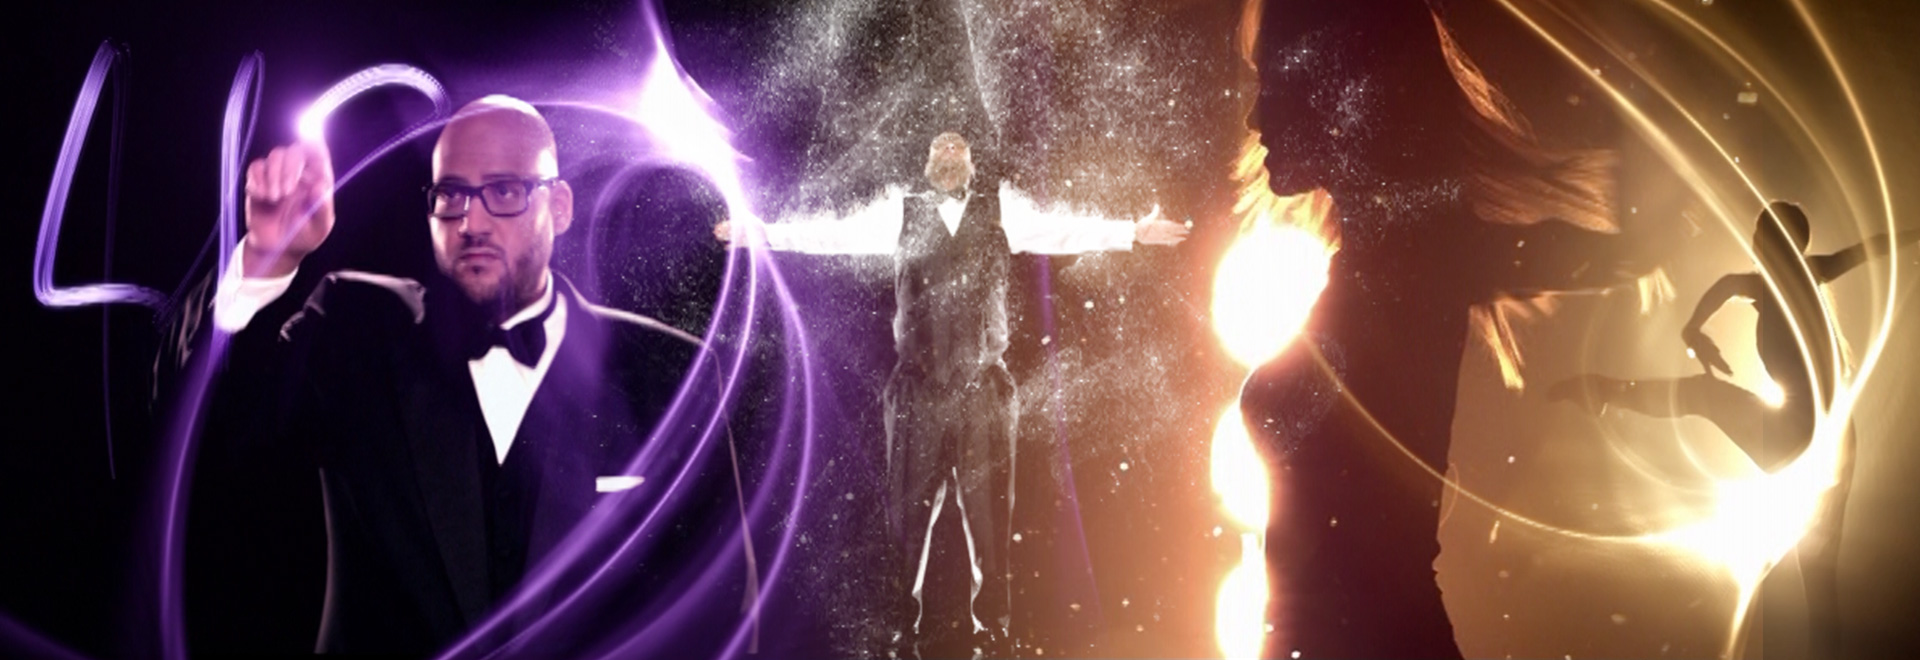 js-filmproduction-postproduction-musicvideo-glashaus_licht-collage